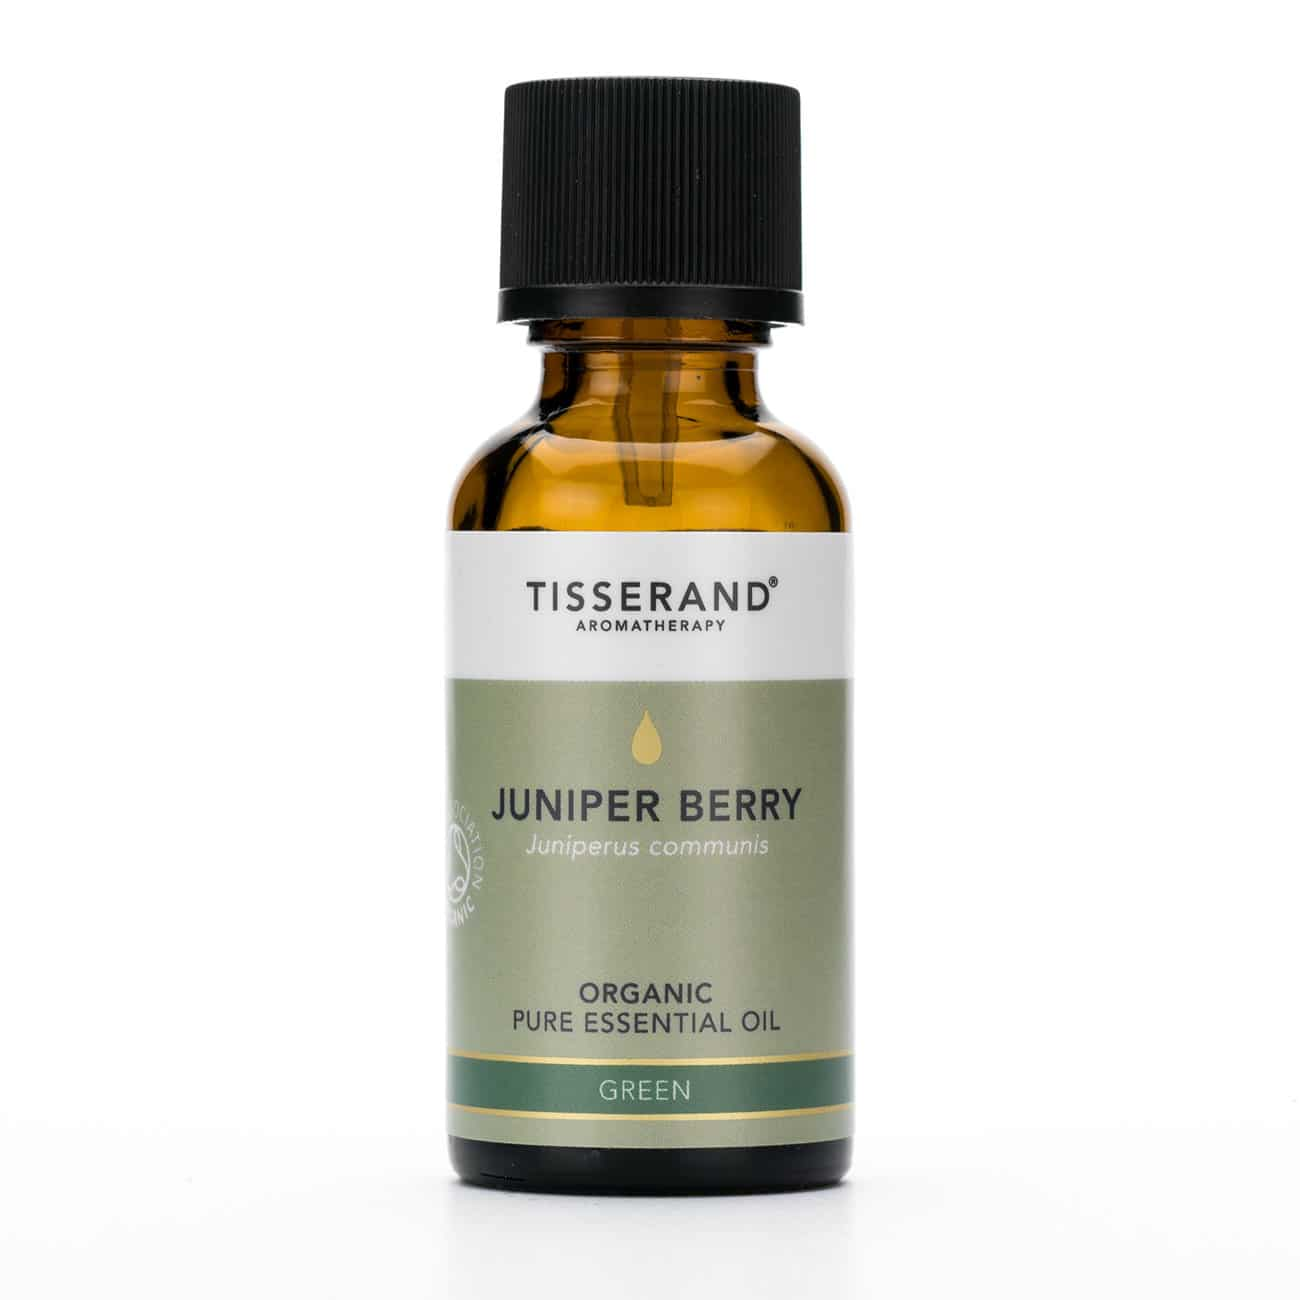 Juniper Berry Organic Pure Essential Oil 9ml Tisserand Aromatherapy